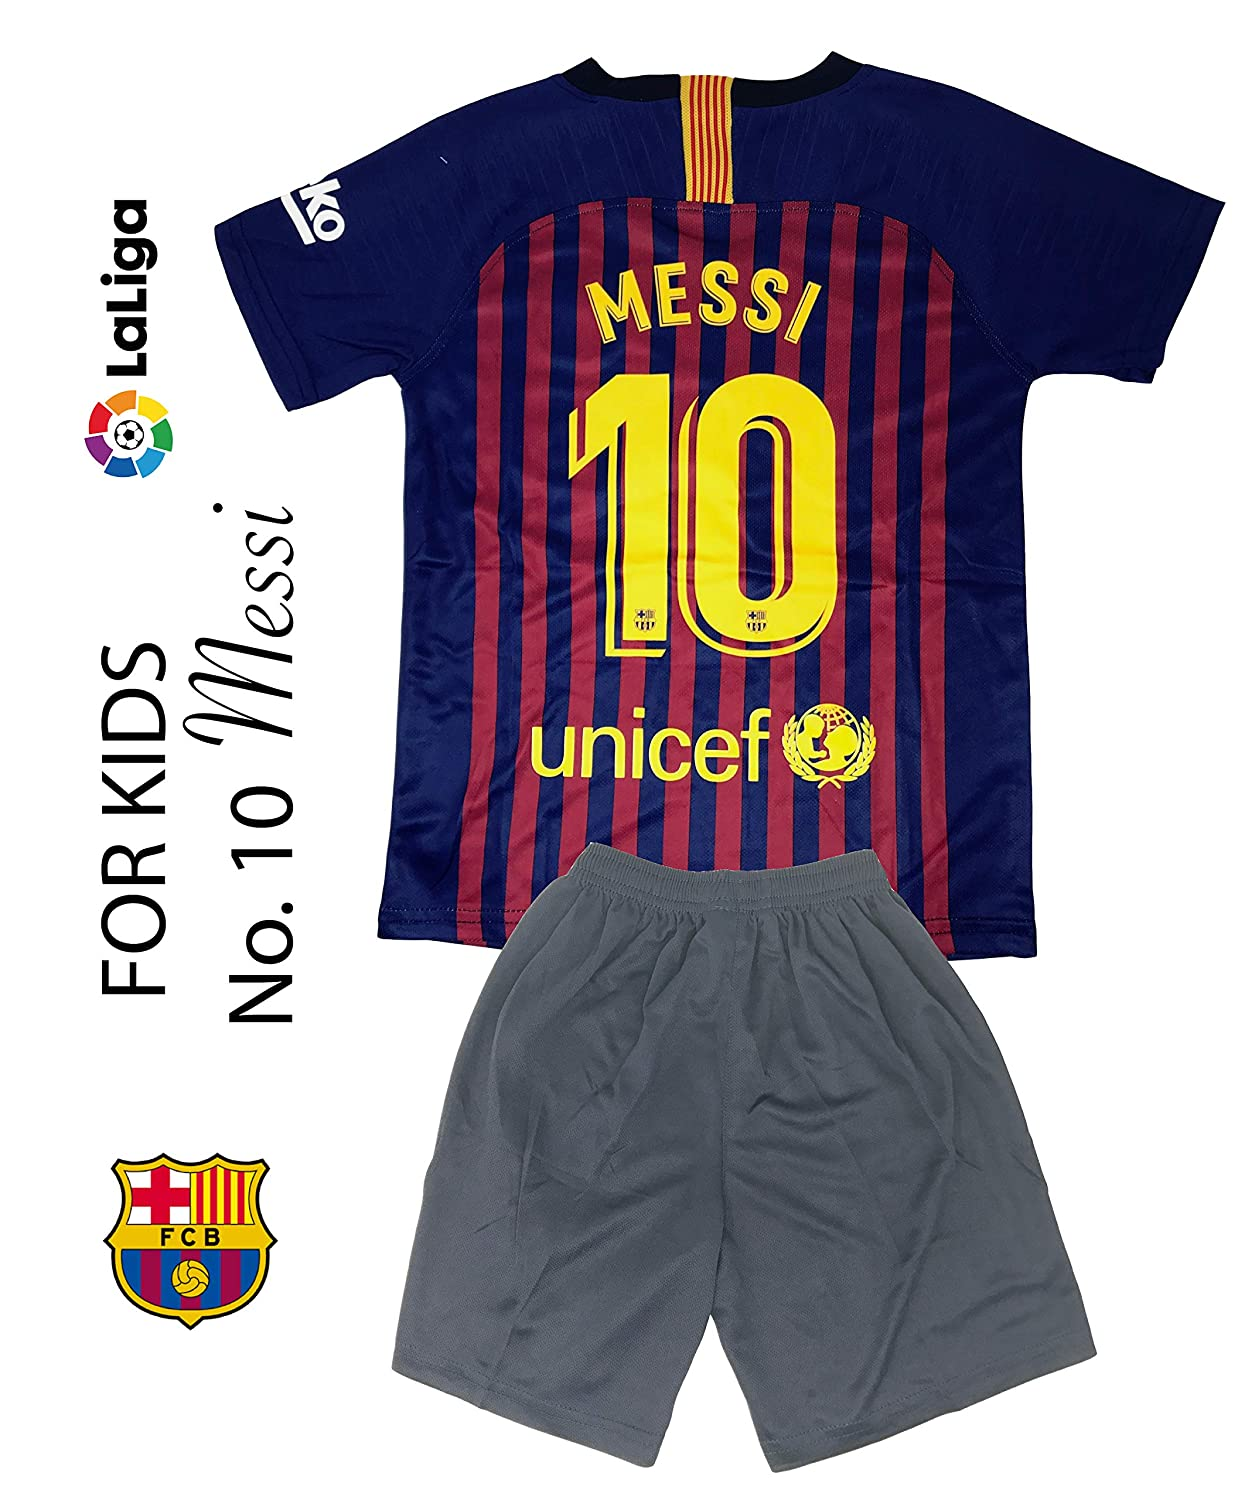 Amazon.com   The Soccer Jersey and Short for Kids on Season 2019 - Best  Soccer KIT for Kids - Juventus Ronaldo 7 - Barcelona FC 10 Messi - Real  Madrid 10 ... 178536d85